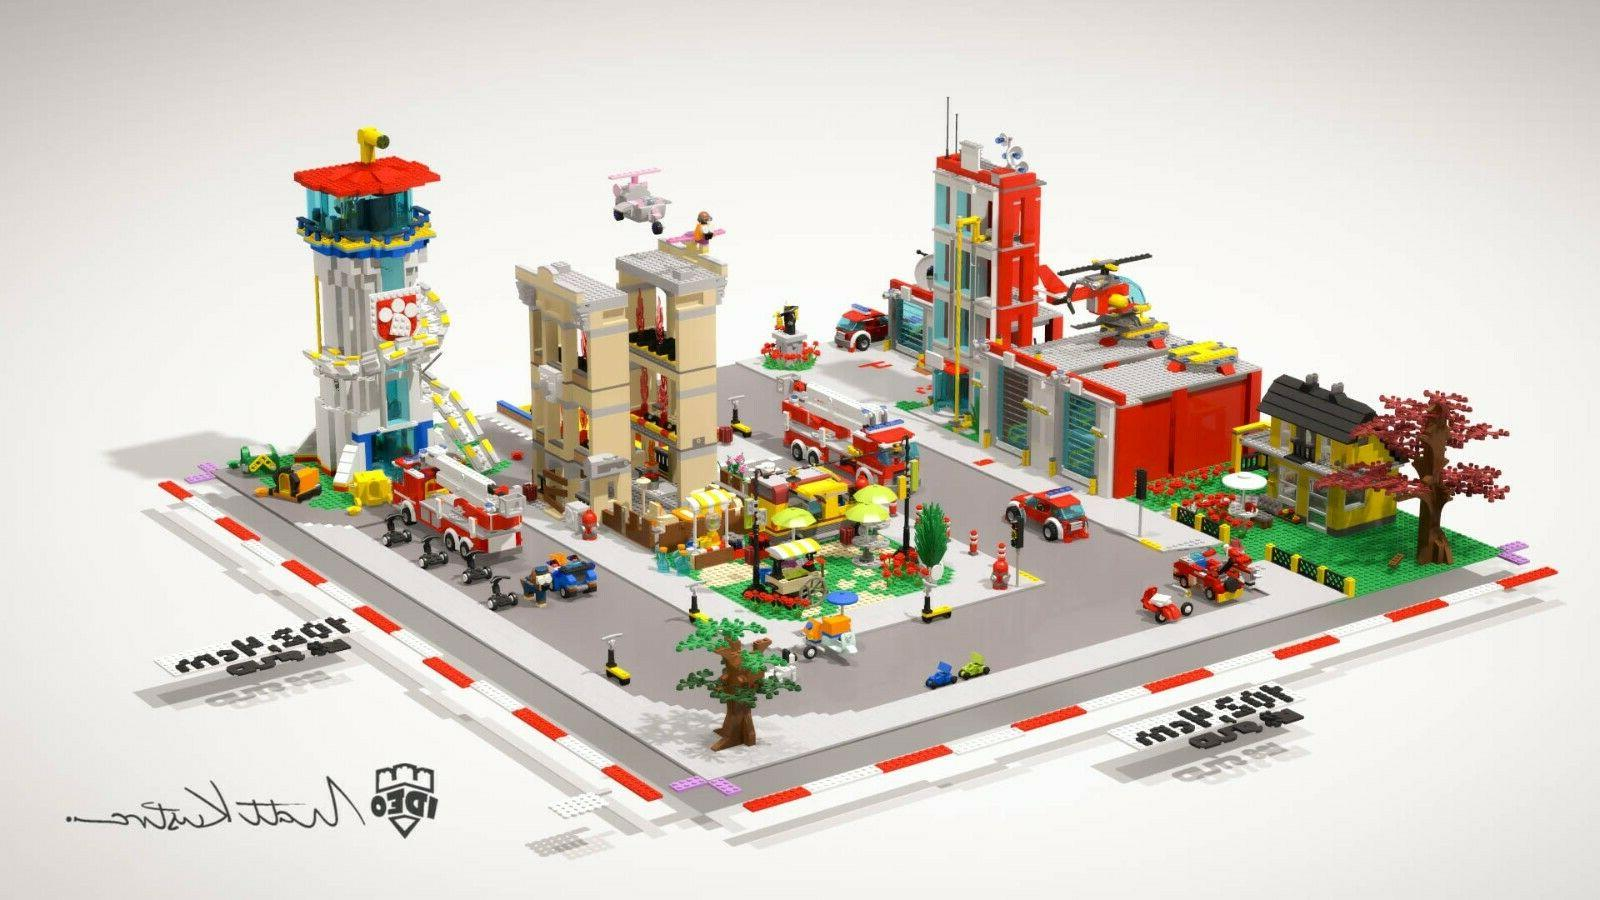 City bricks with 10ft2 by model building